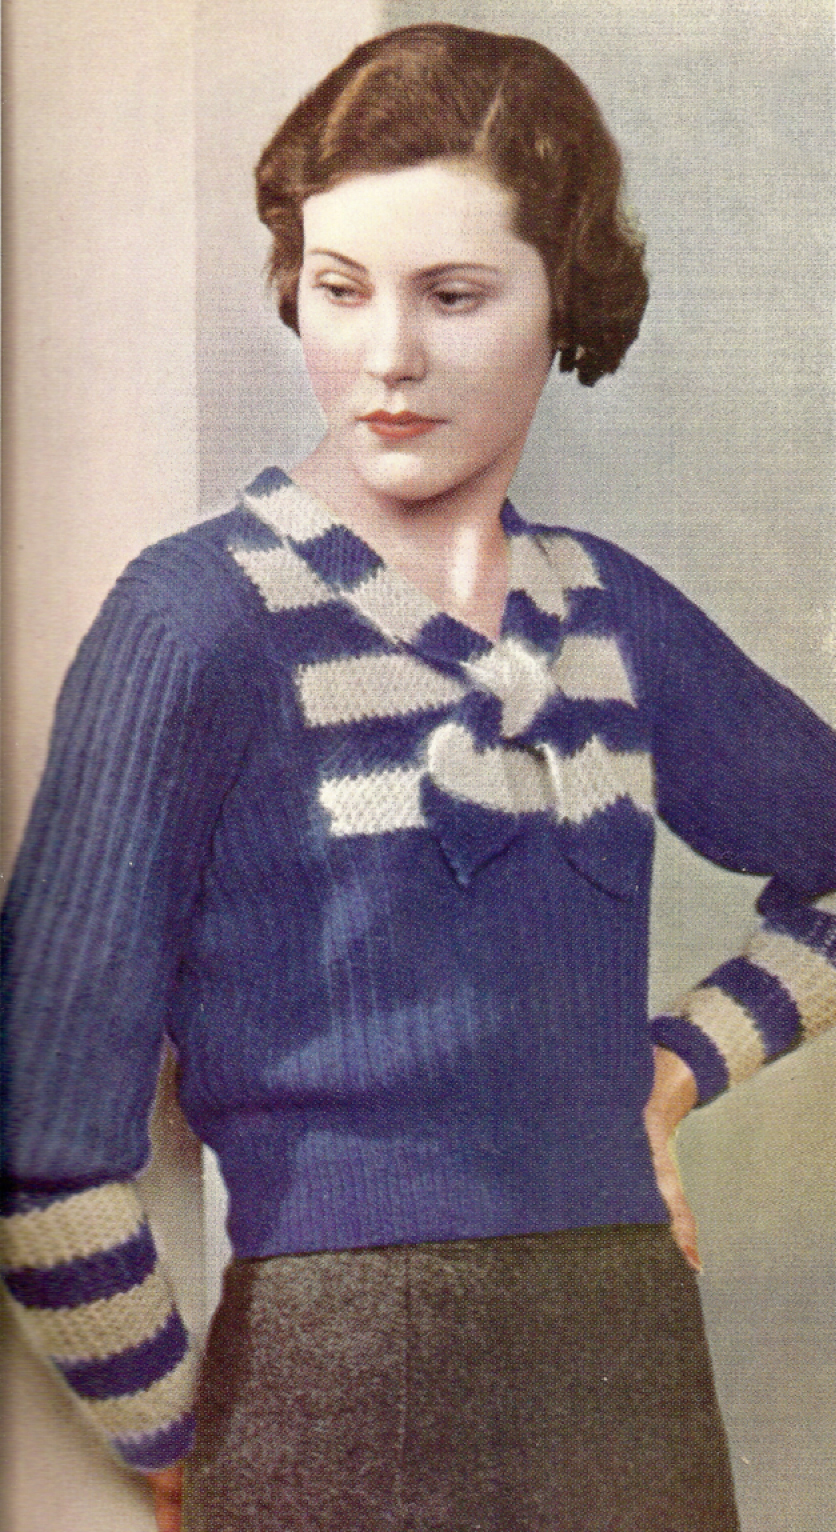 Knitting Patterns Free Vintage : The Vintage Pattern Files: 1930s Knitting - The Charm of ...